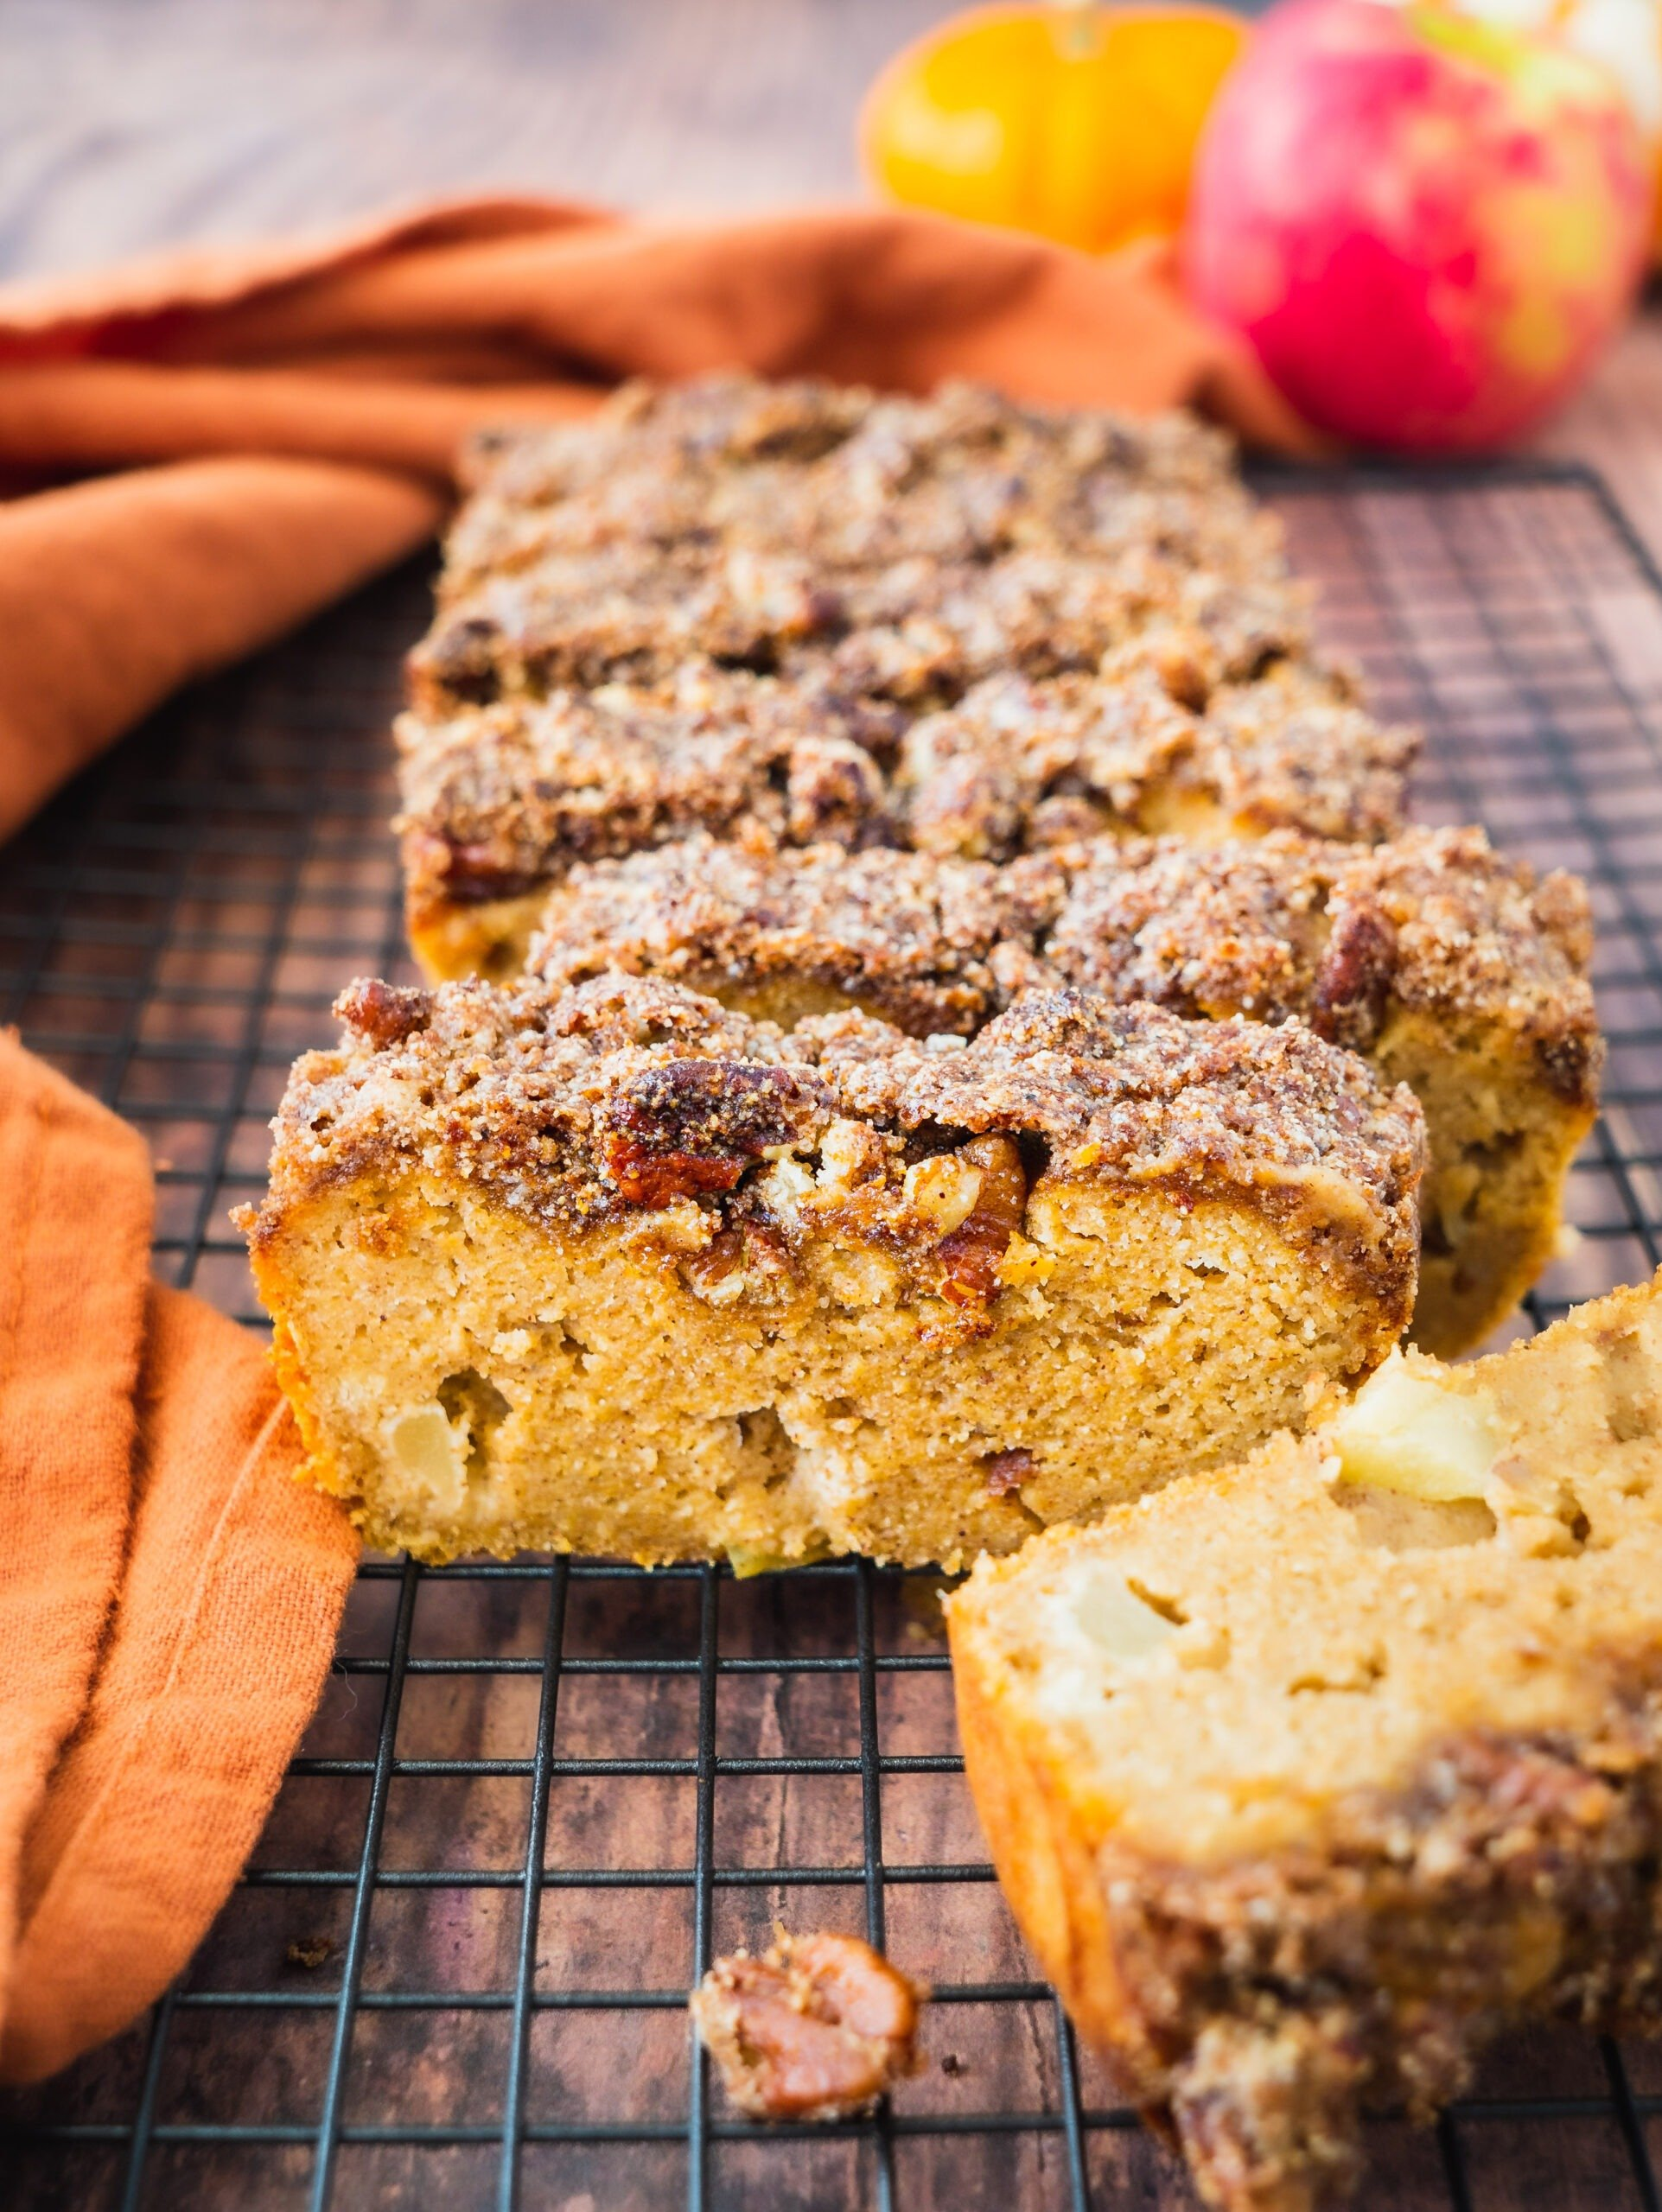 Apple Bread with Crumble Topping (Paleo, GF)